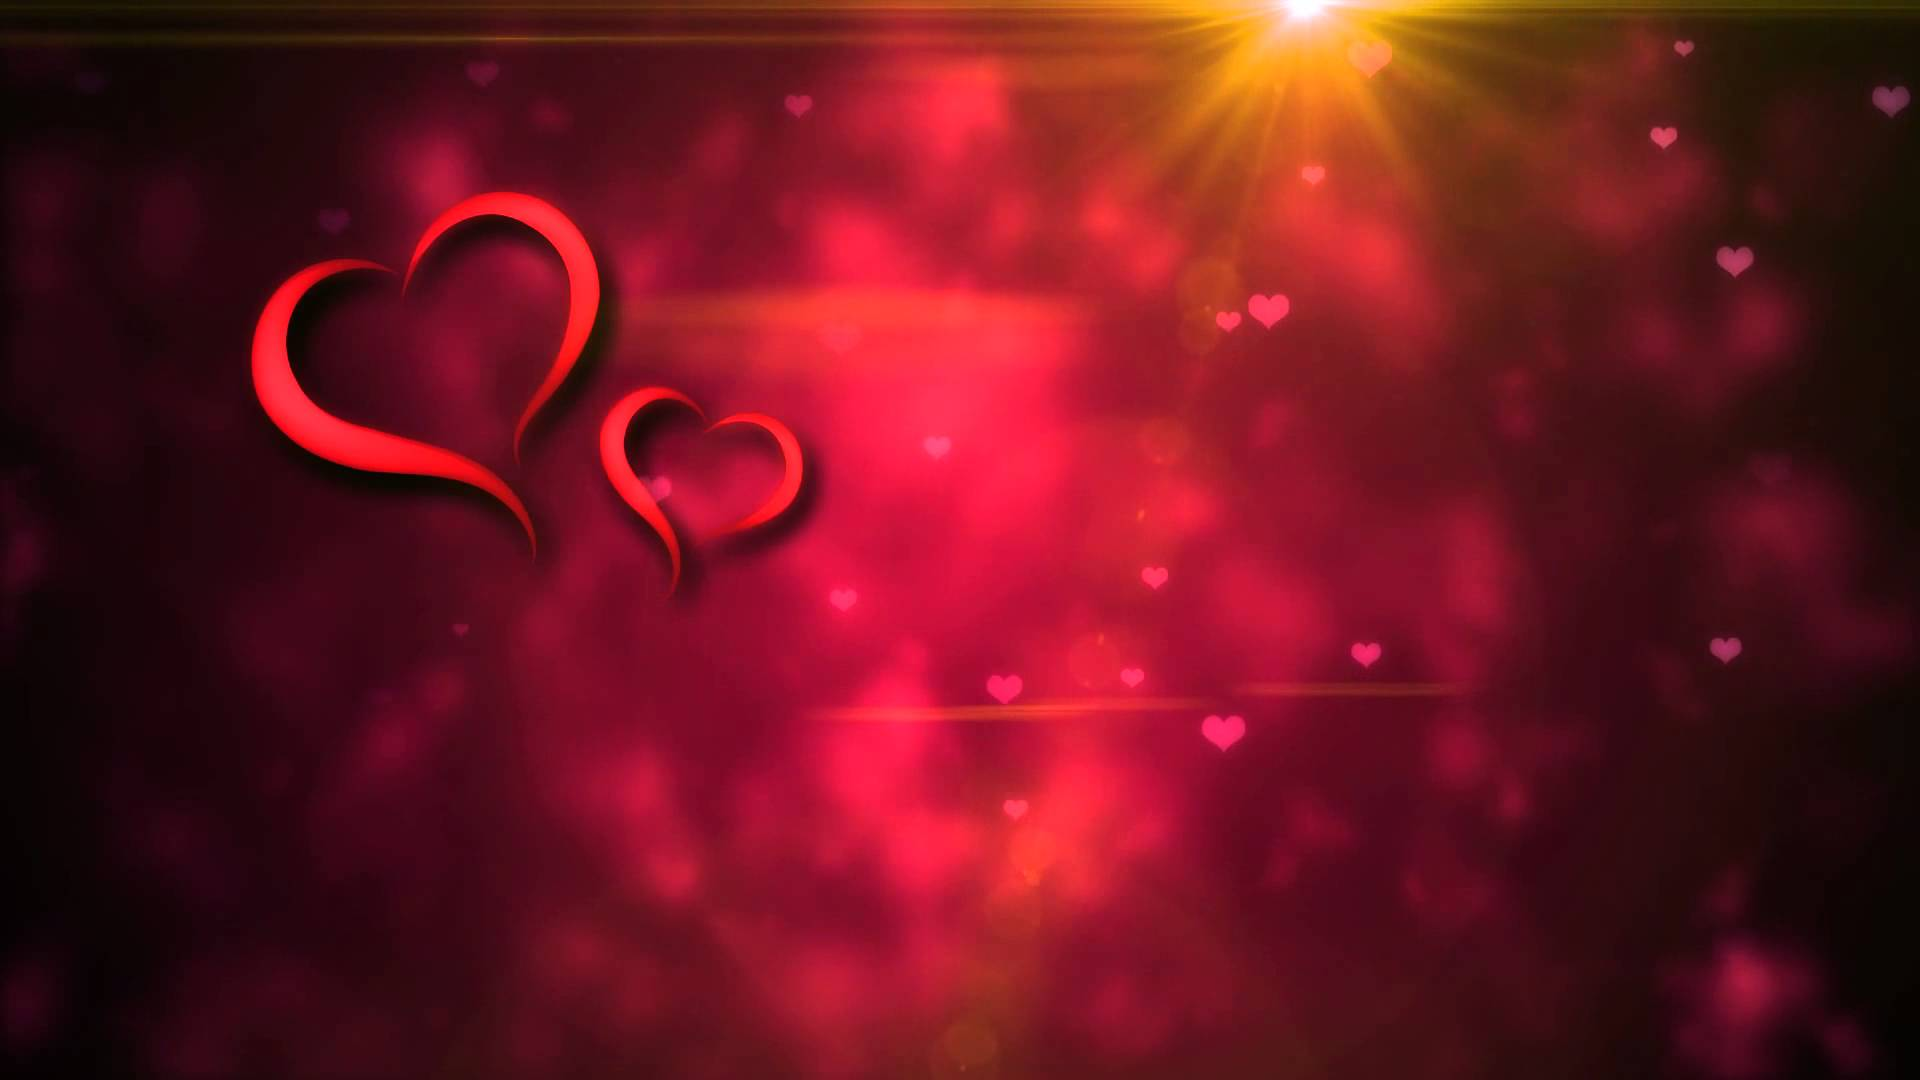 Love Theme Wallpaper In Hd : Hd Wedding Backgrounds - WallpaperSafari